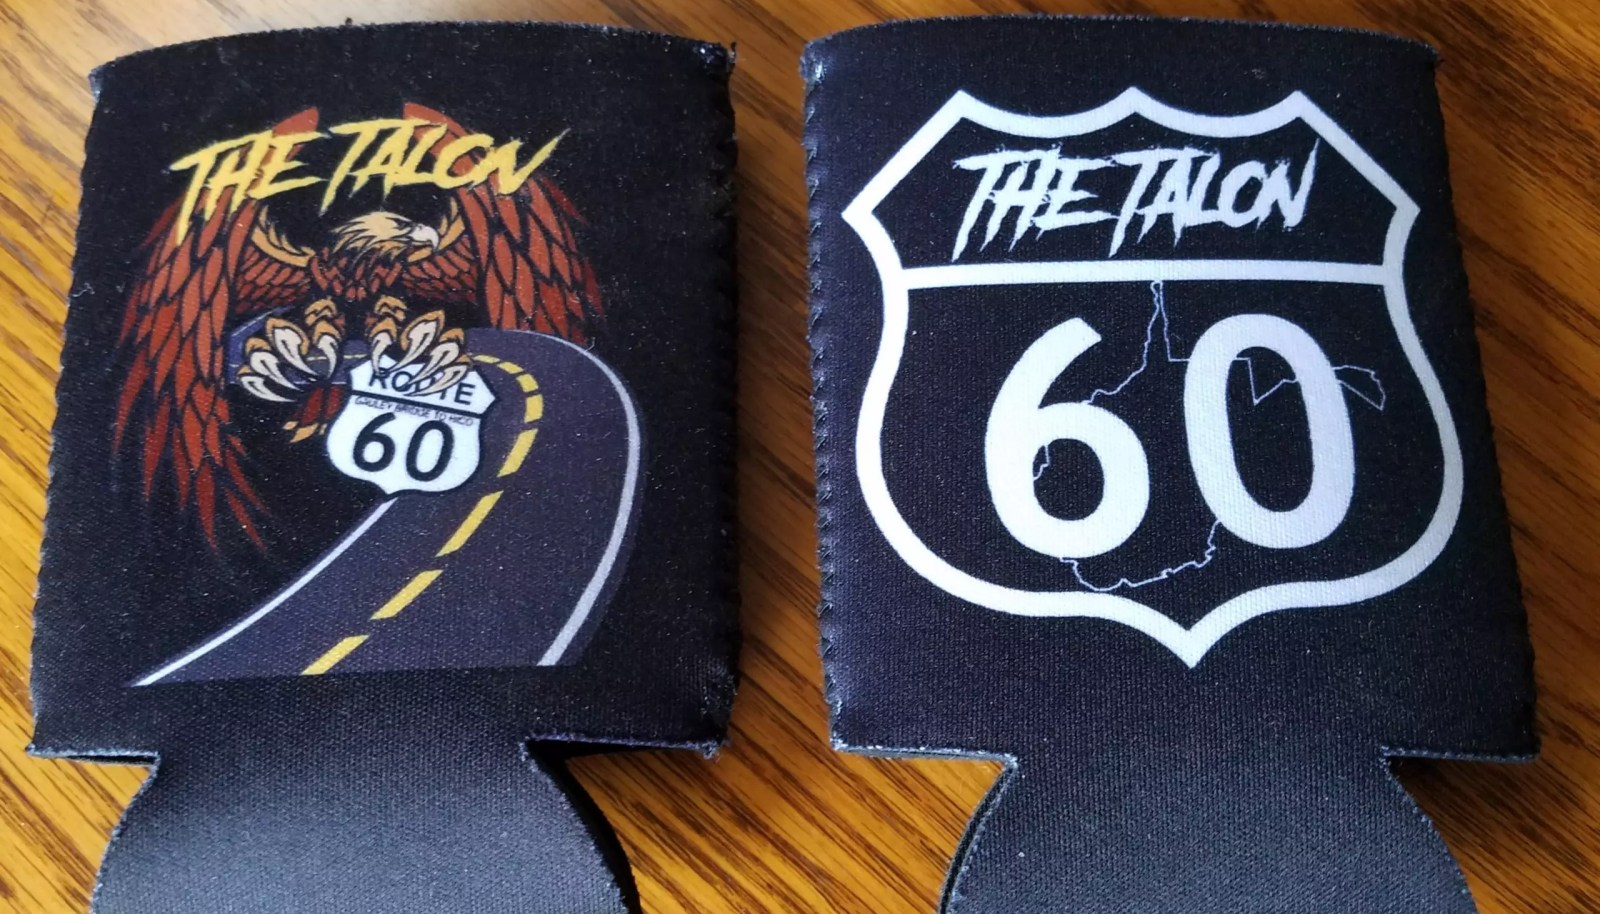 THE TALON CAN KOOZIE